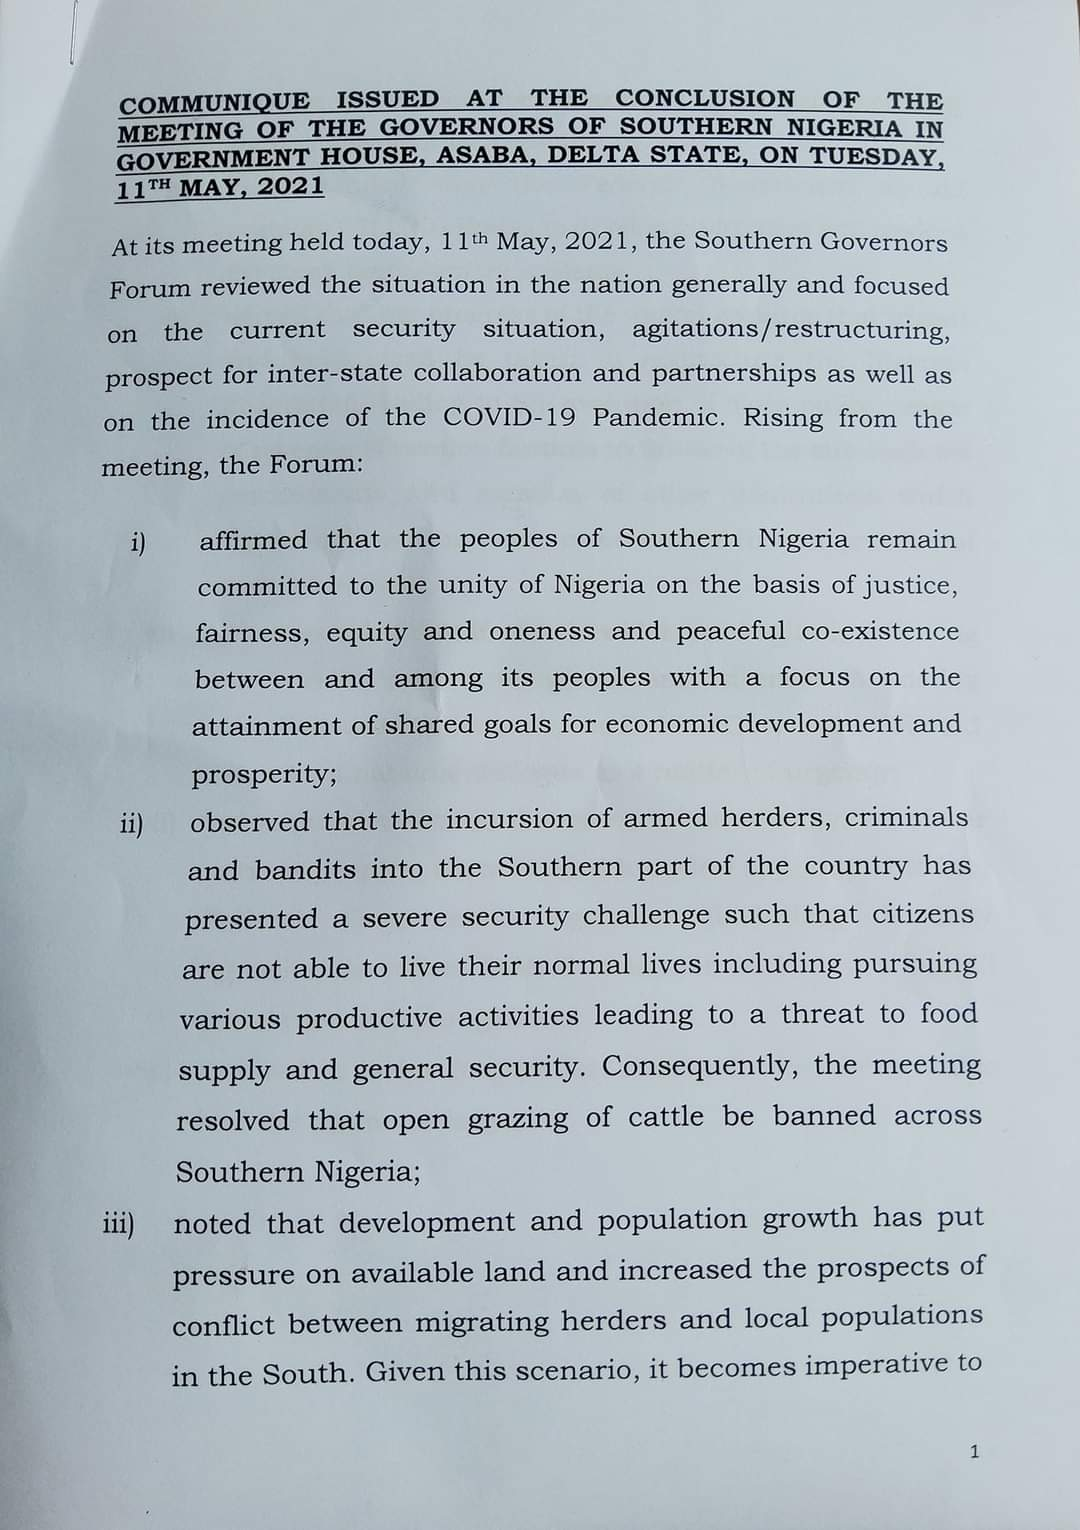 Southern Governors Forum Ban open grazing of cattle across the three regions, call on Federal Government to convoke a national dialogue as a matter of urgency